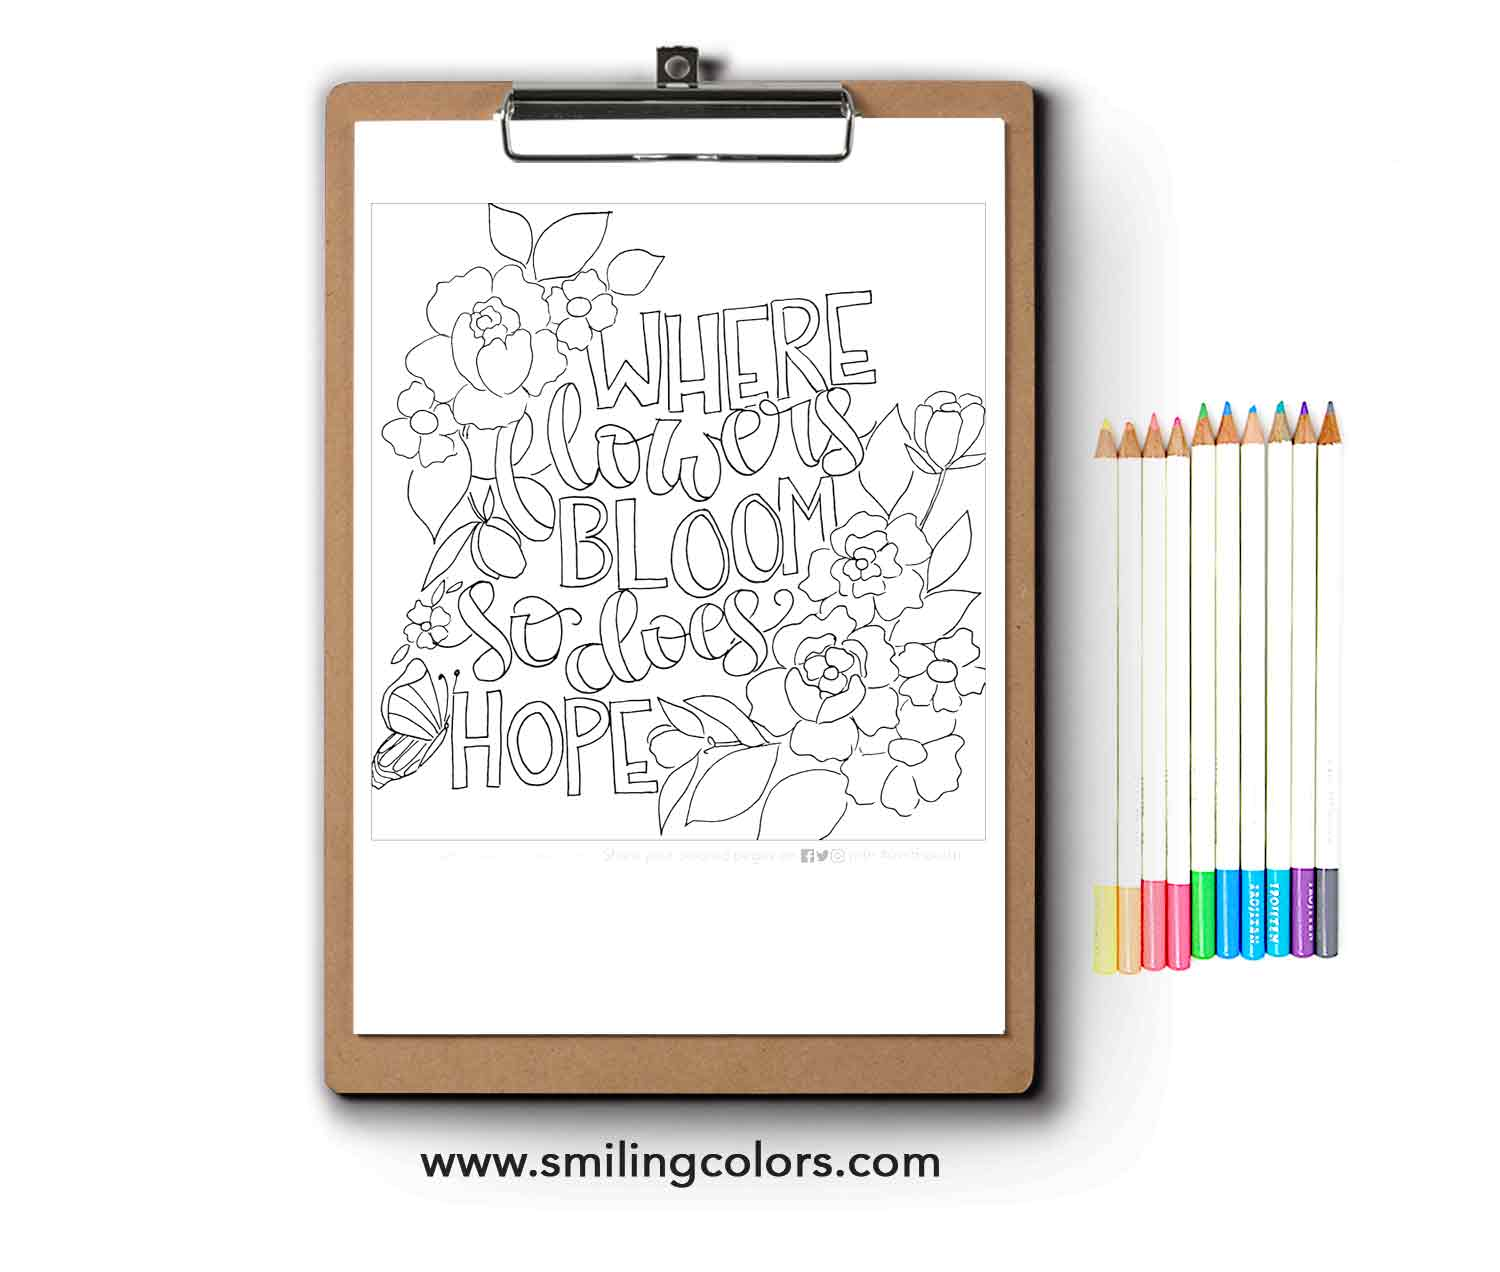 - Inspirational Coloring Page FREE Printable Download - Smitha Katti